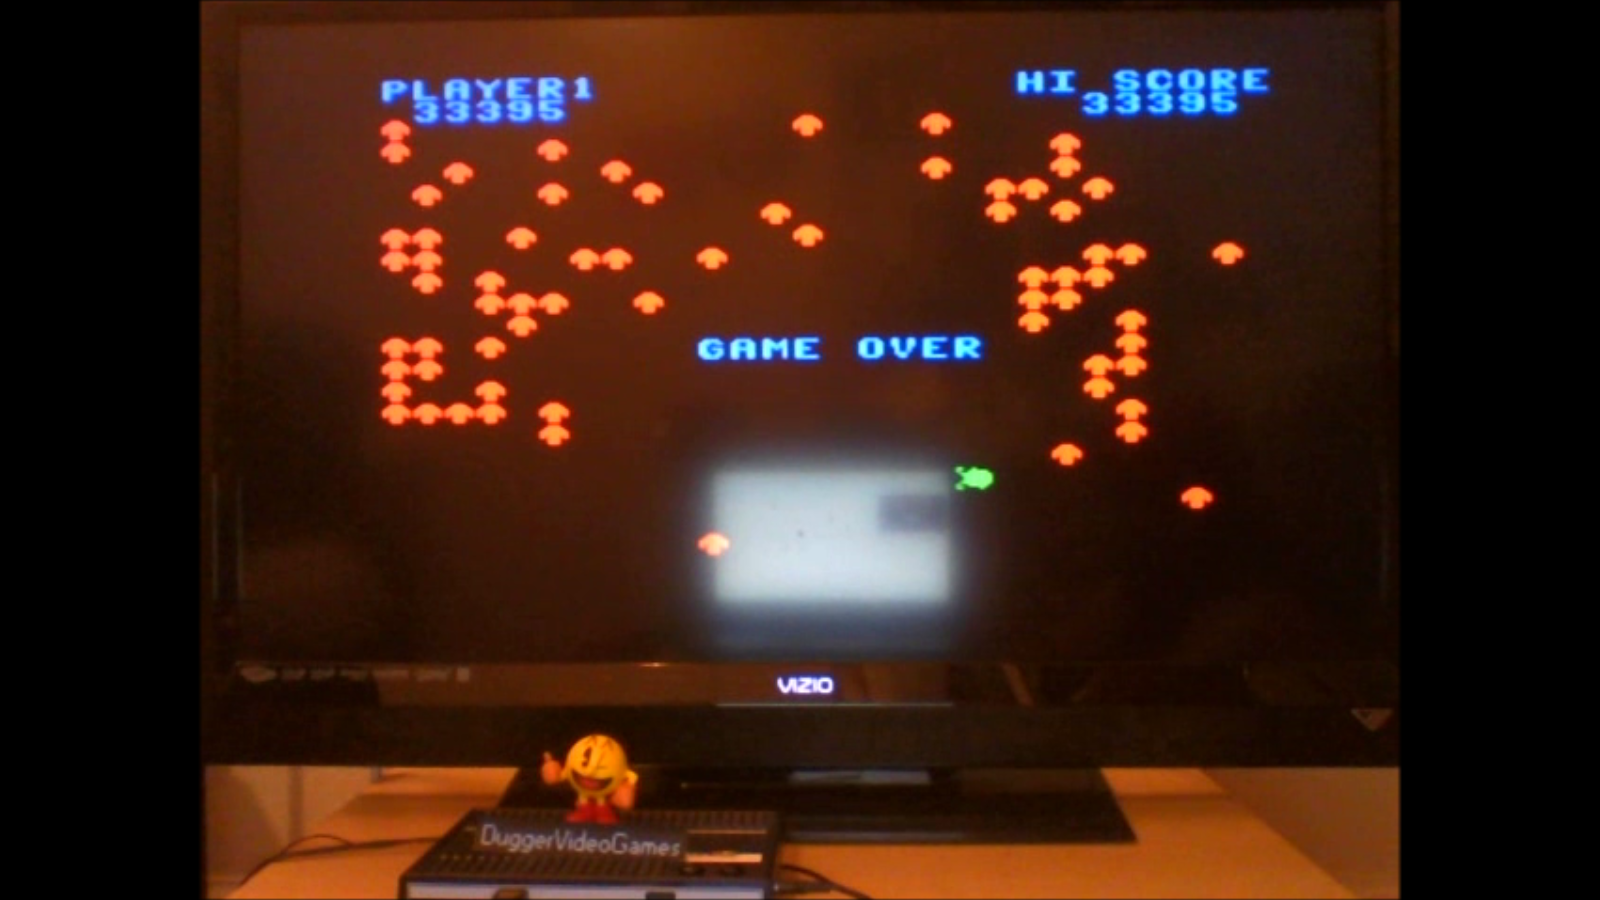 DuggerVideoGames: Centipede: Standard (Colecovision Emulated) 33,395 points on 2016-07-09 00:40:12